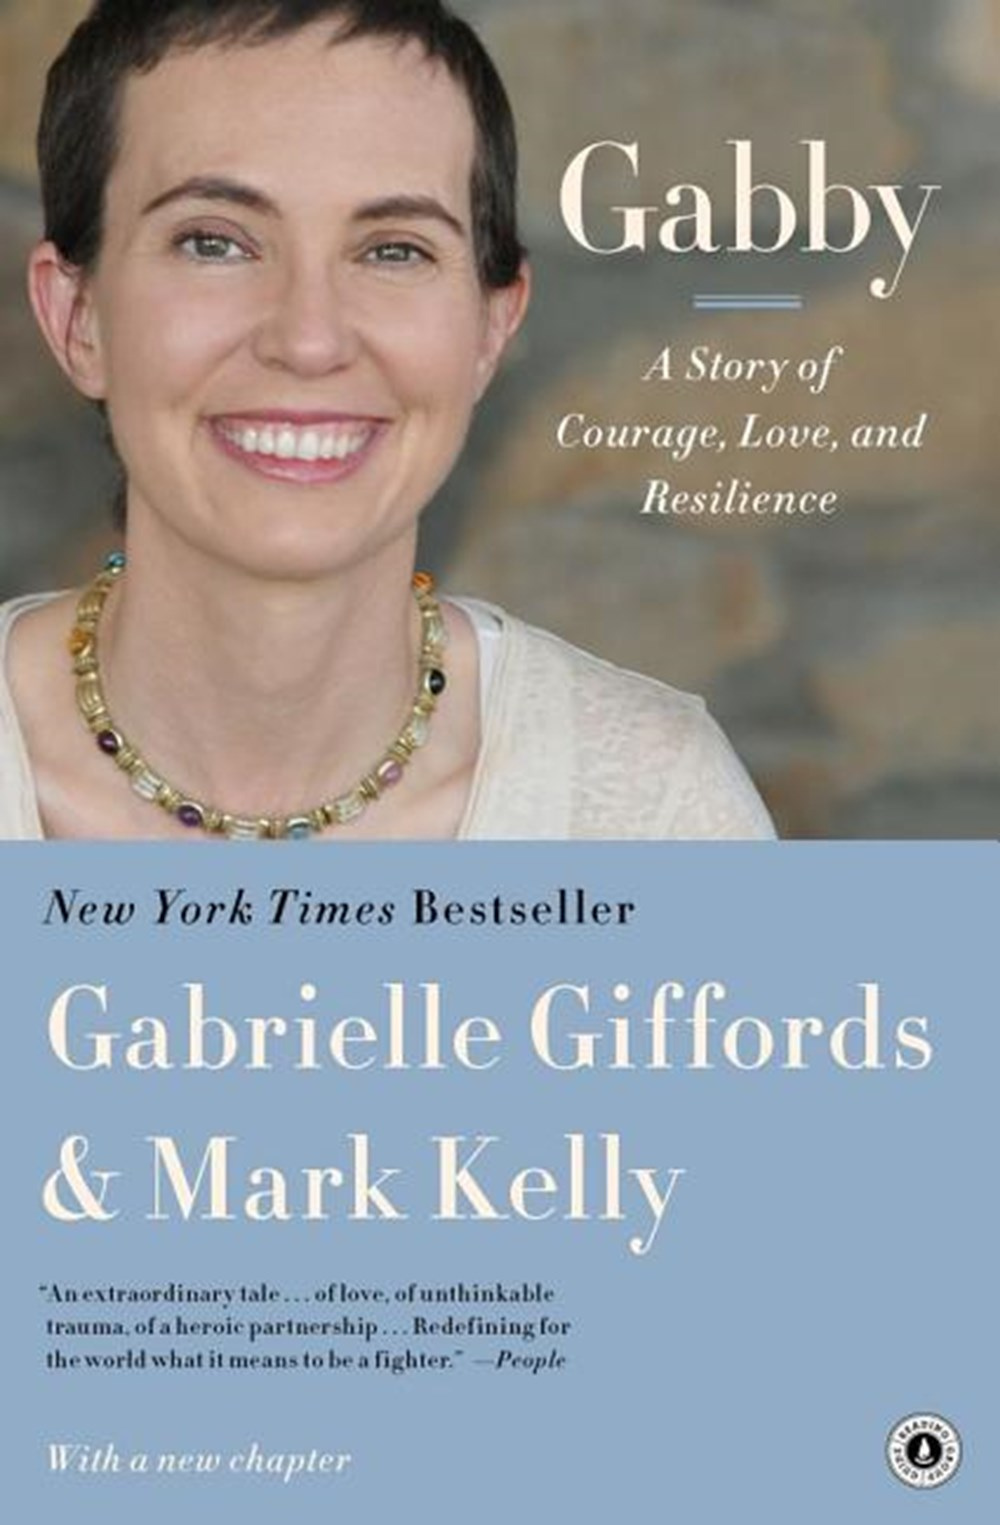 Gabby A Story of Courage, Love, and Resilience